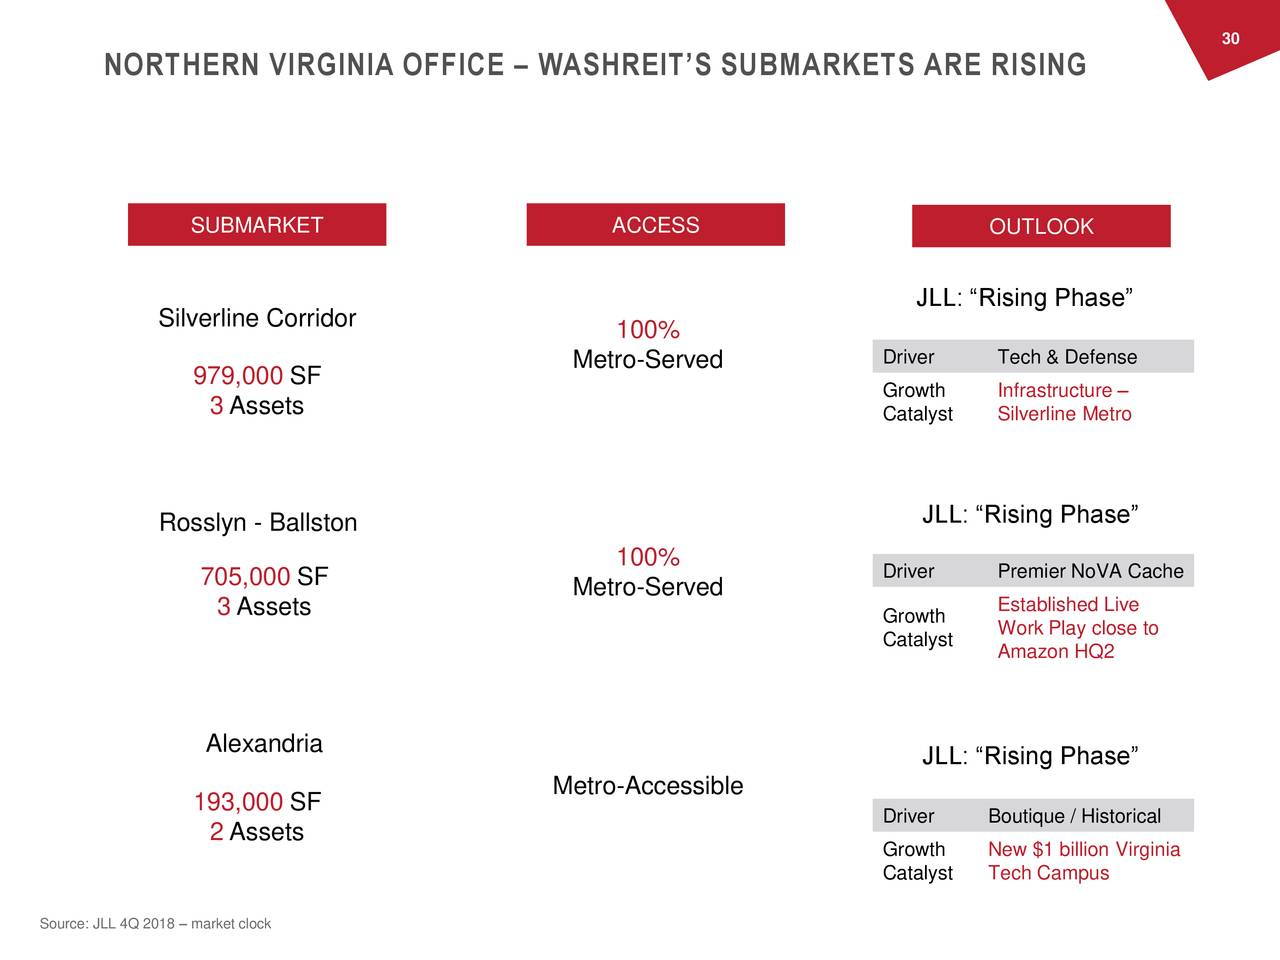 "NORTHERN VIRGINIA OFFICE – WASHREIT'S SUBMARKETS ARE RISING THE DC METRO REGION Where to be in DC SUBMARKET ACCESS OUTLOOK JLL: ""Rising Phase"" Silverline Corridor 100% Metro-Served Driver Tech & Defense 979,000 SF Growth Infrastructure – 3 Assets Catalyst Silverline Metro Rosslyn - Ballston JLL: ""Rising Phase"" 100% Driver Premier NoVA Cache 705,000 SF Metro-Served 3 Assets Growth Established Live Catalyst Work Play close to Amazon HQ2 Alexandria JLL: ""Rising Phase"" 193,000 SF Metro-Accessible Driver Boutique / Historical 2 Assets Growth New $1 billion Virginia Catalyst Tech Campus Source: JLL 4Q 2018 – market clock"